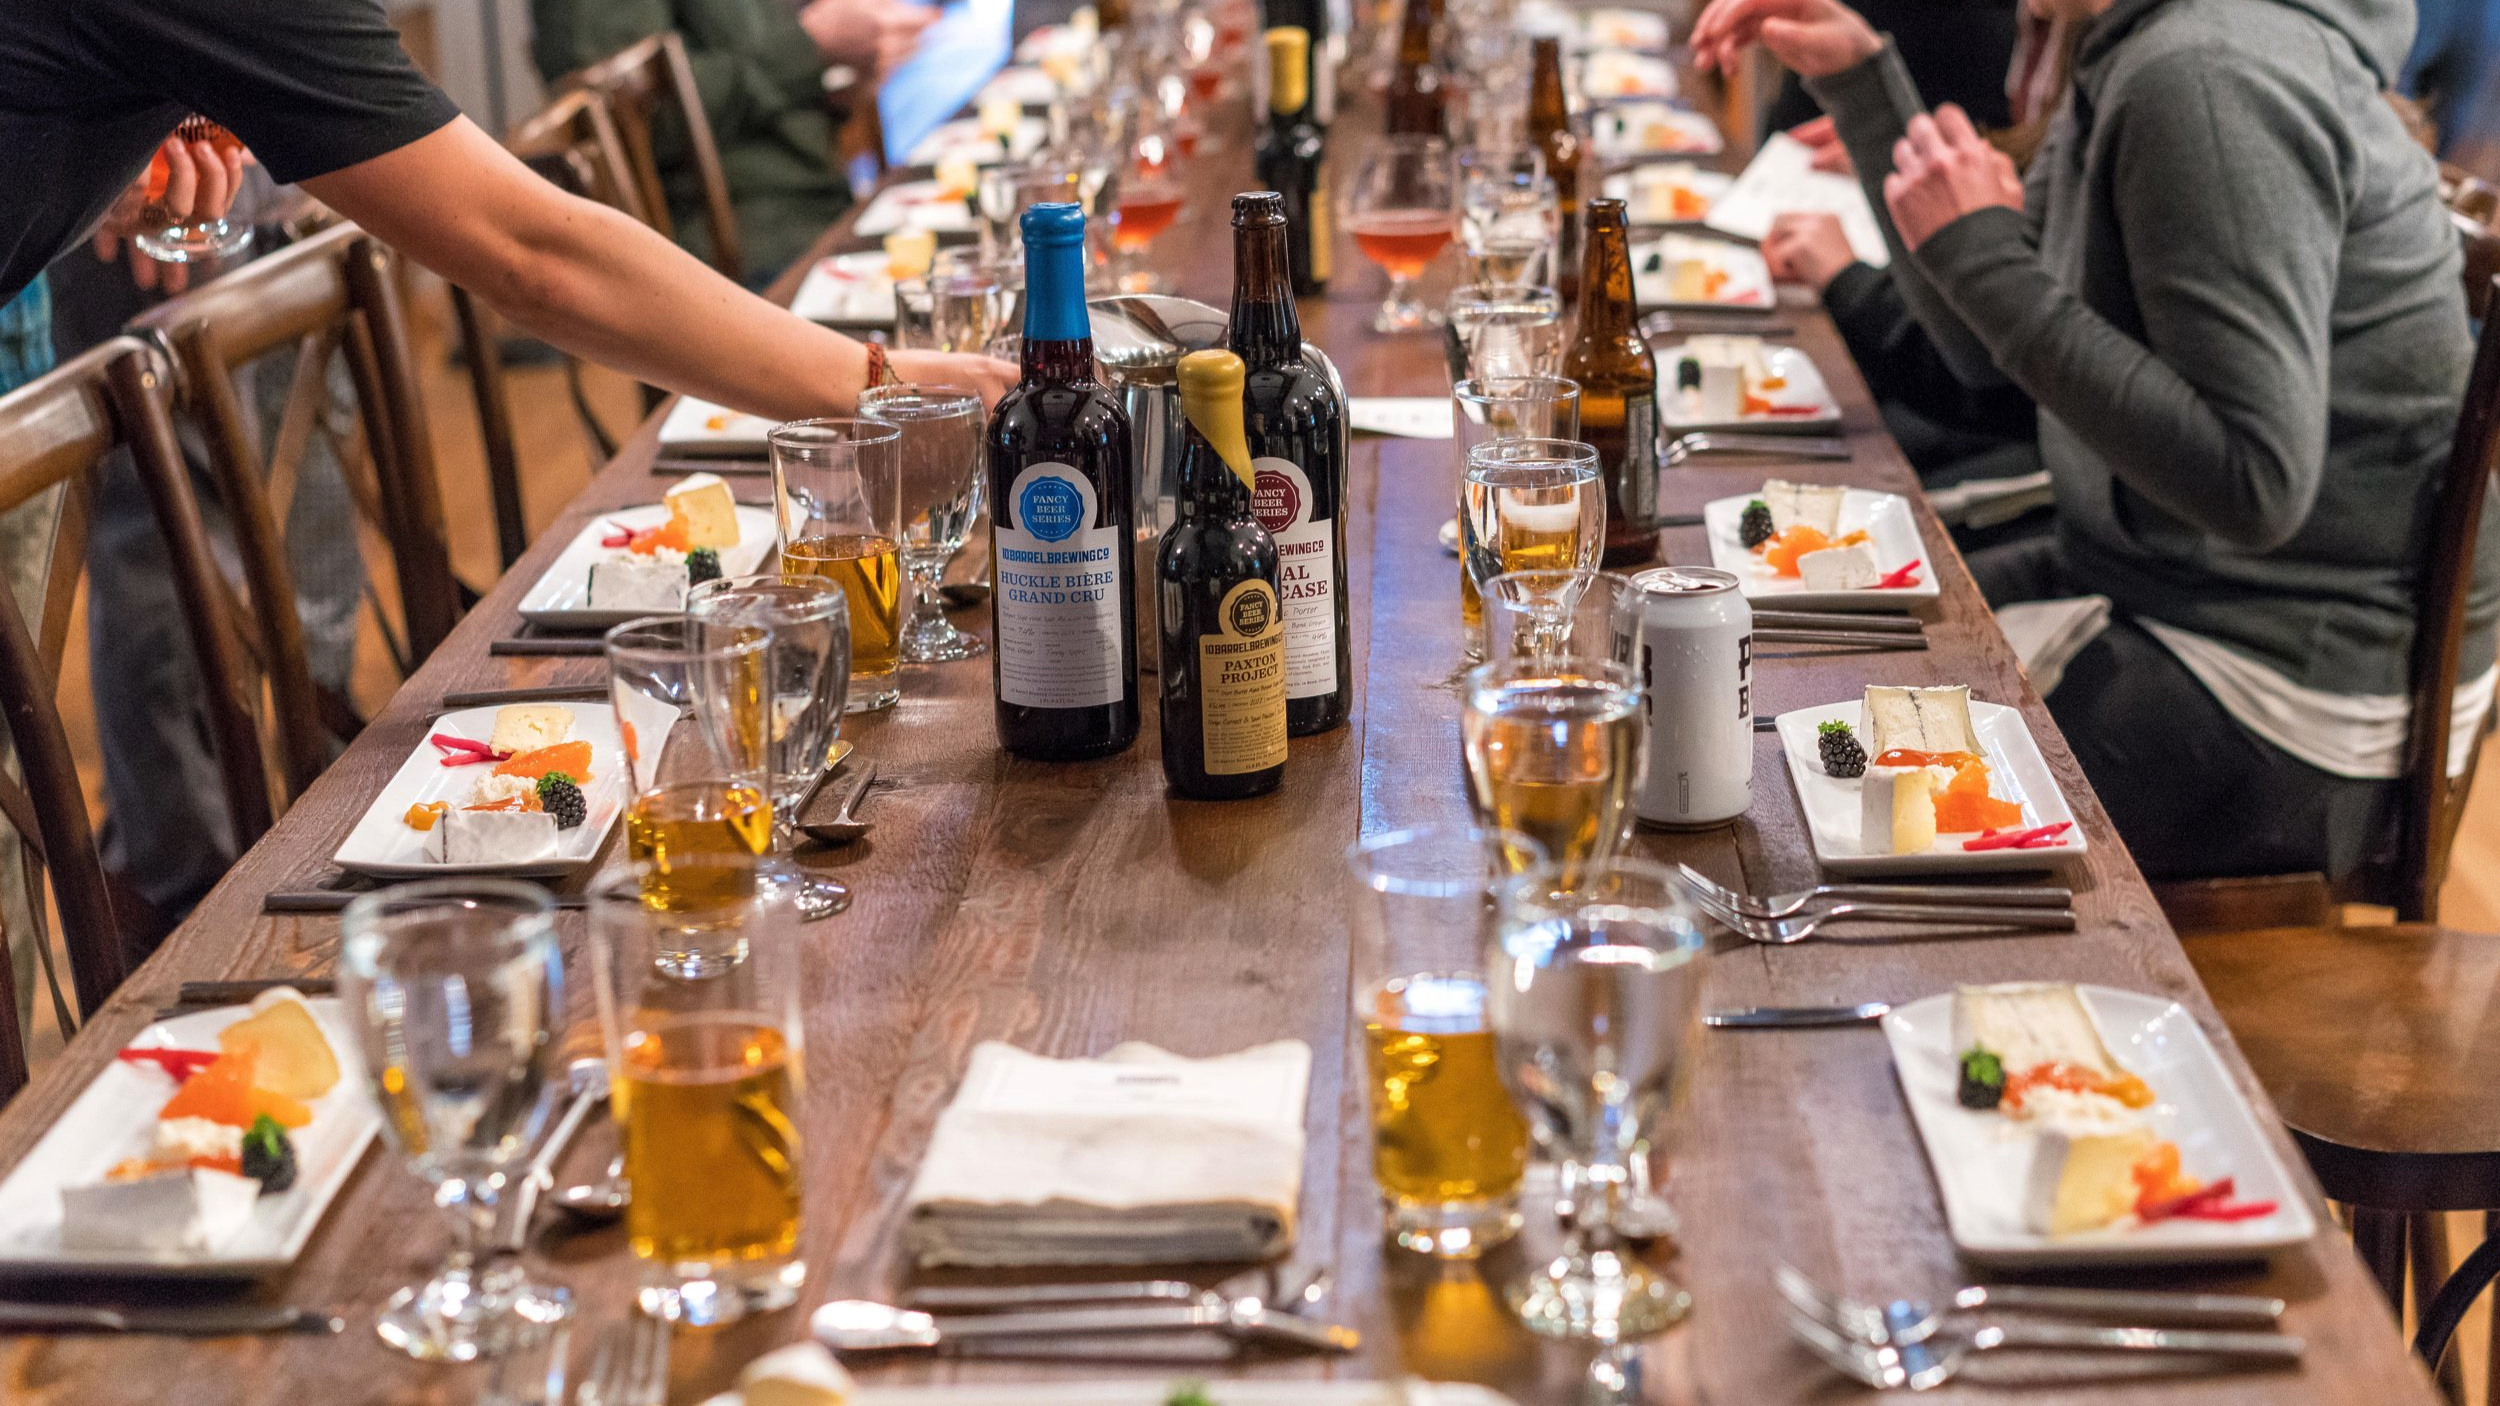 The table is set with Chef's culinary and brewing work product.